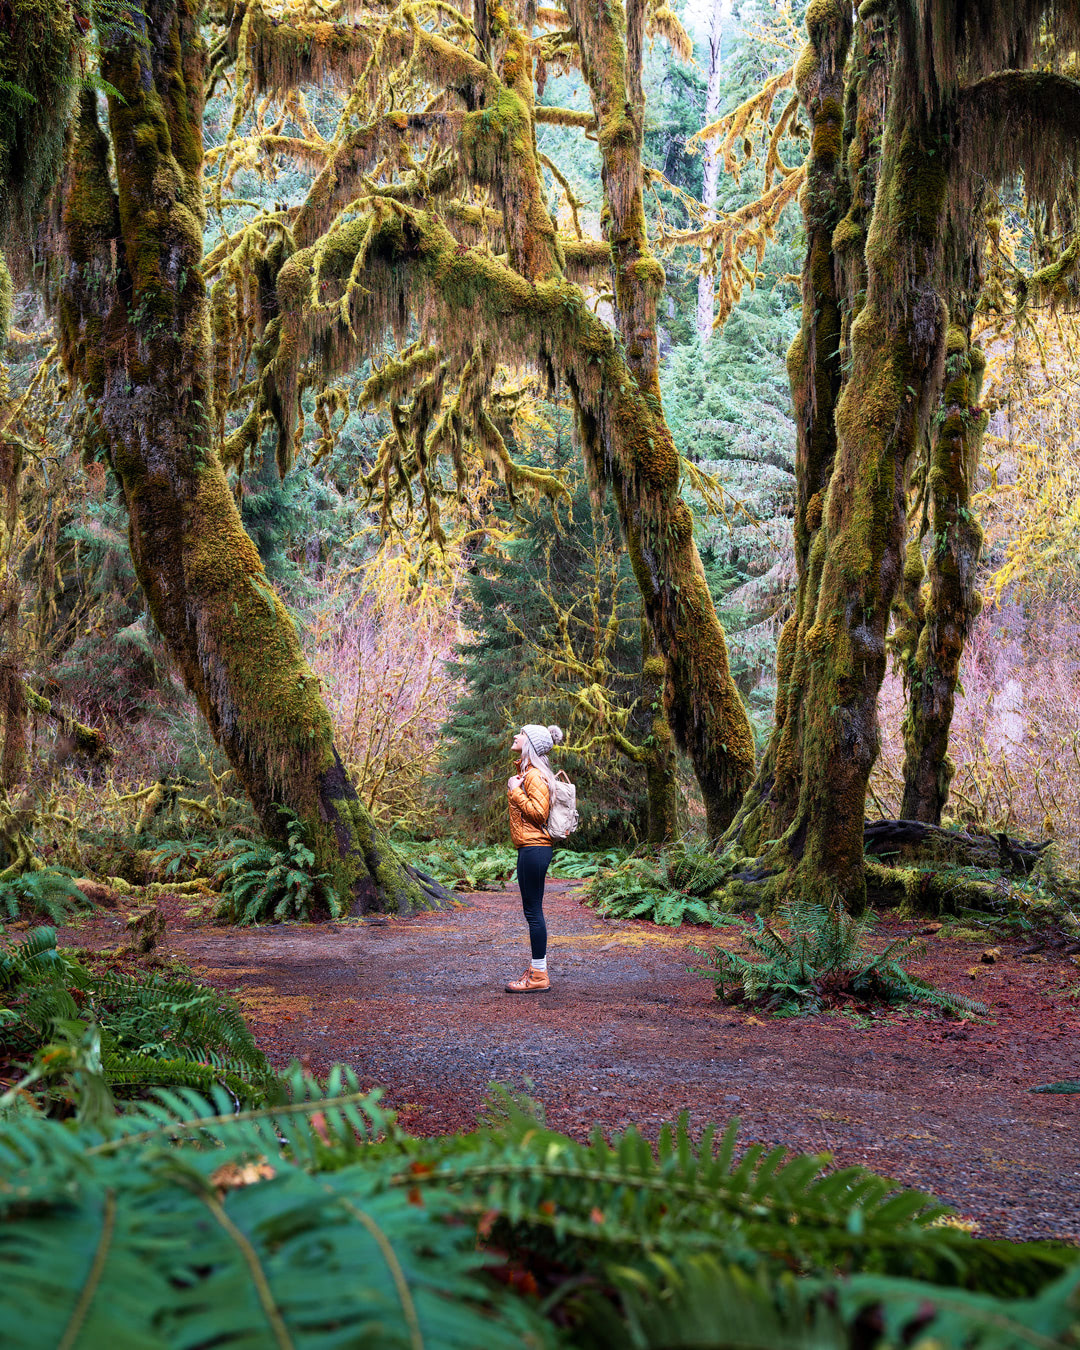 Beginner Friendly Hikes in Washington State - Hoh Rainforest Hall of Mosses Trail